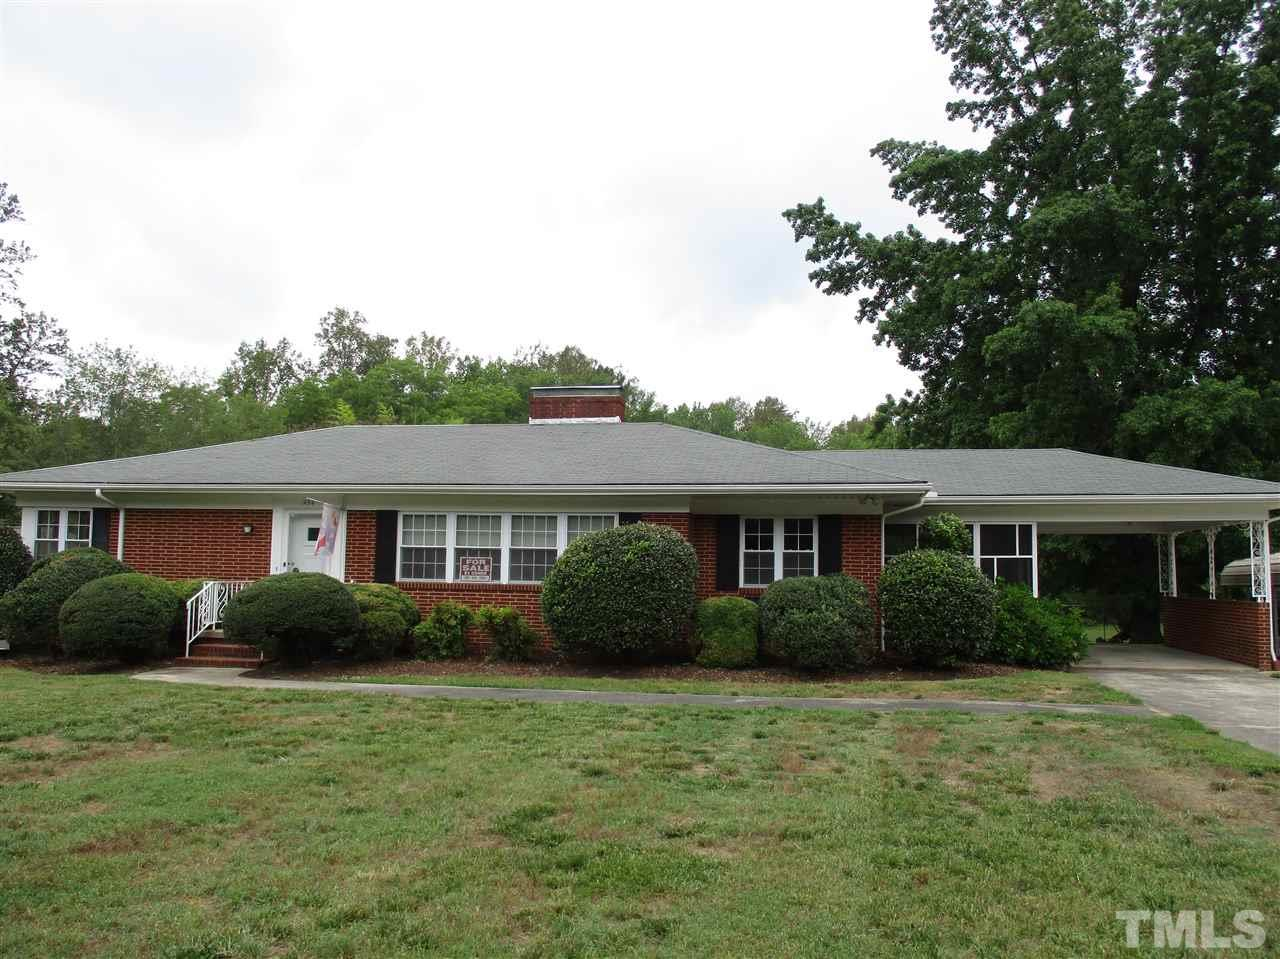 Photo of 1454 N NC Highway 87, Elon, NC 27244